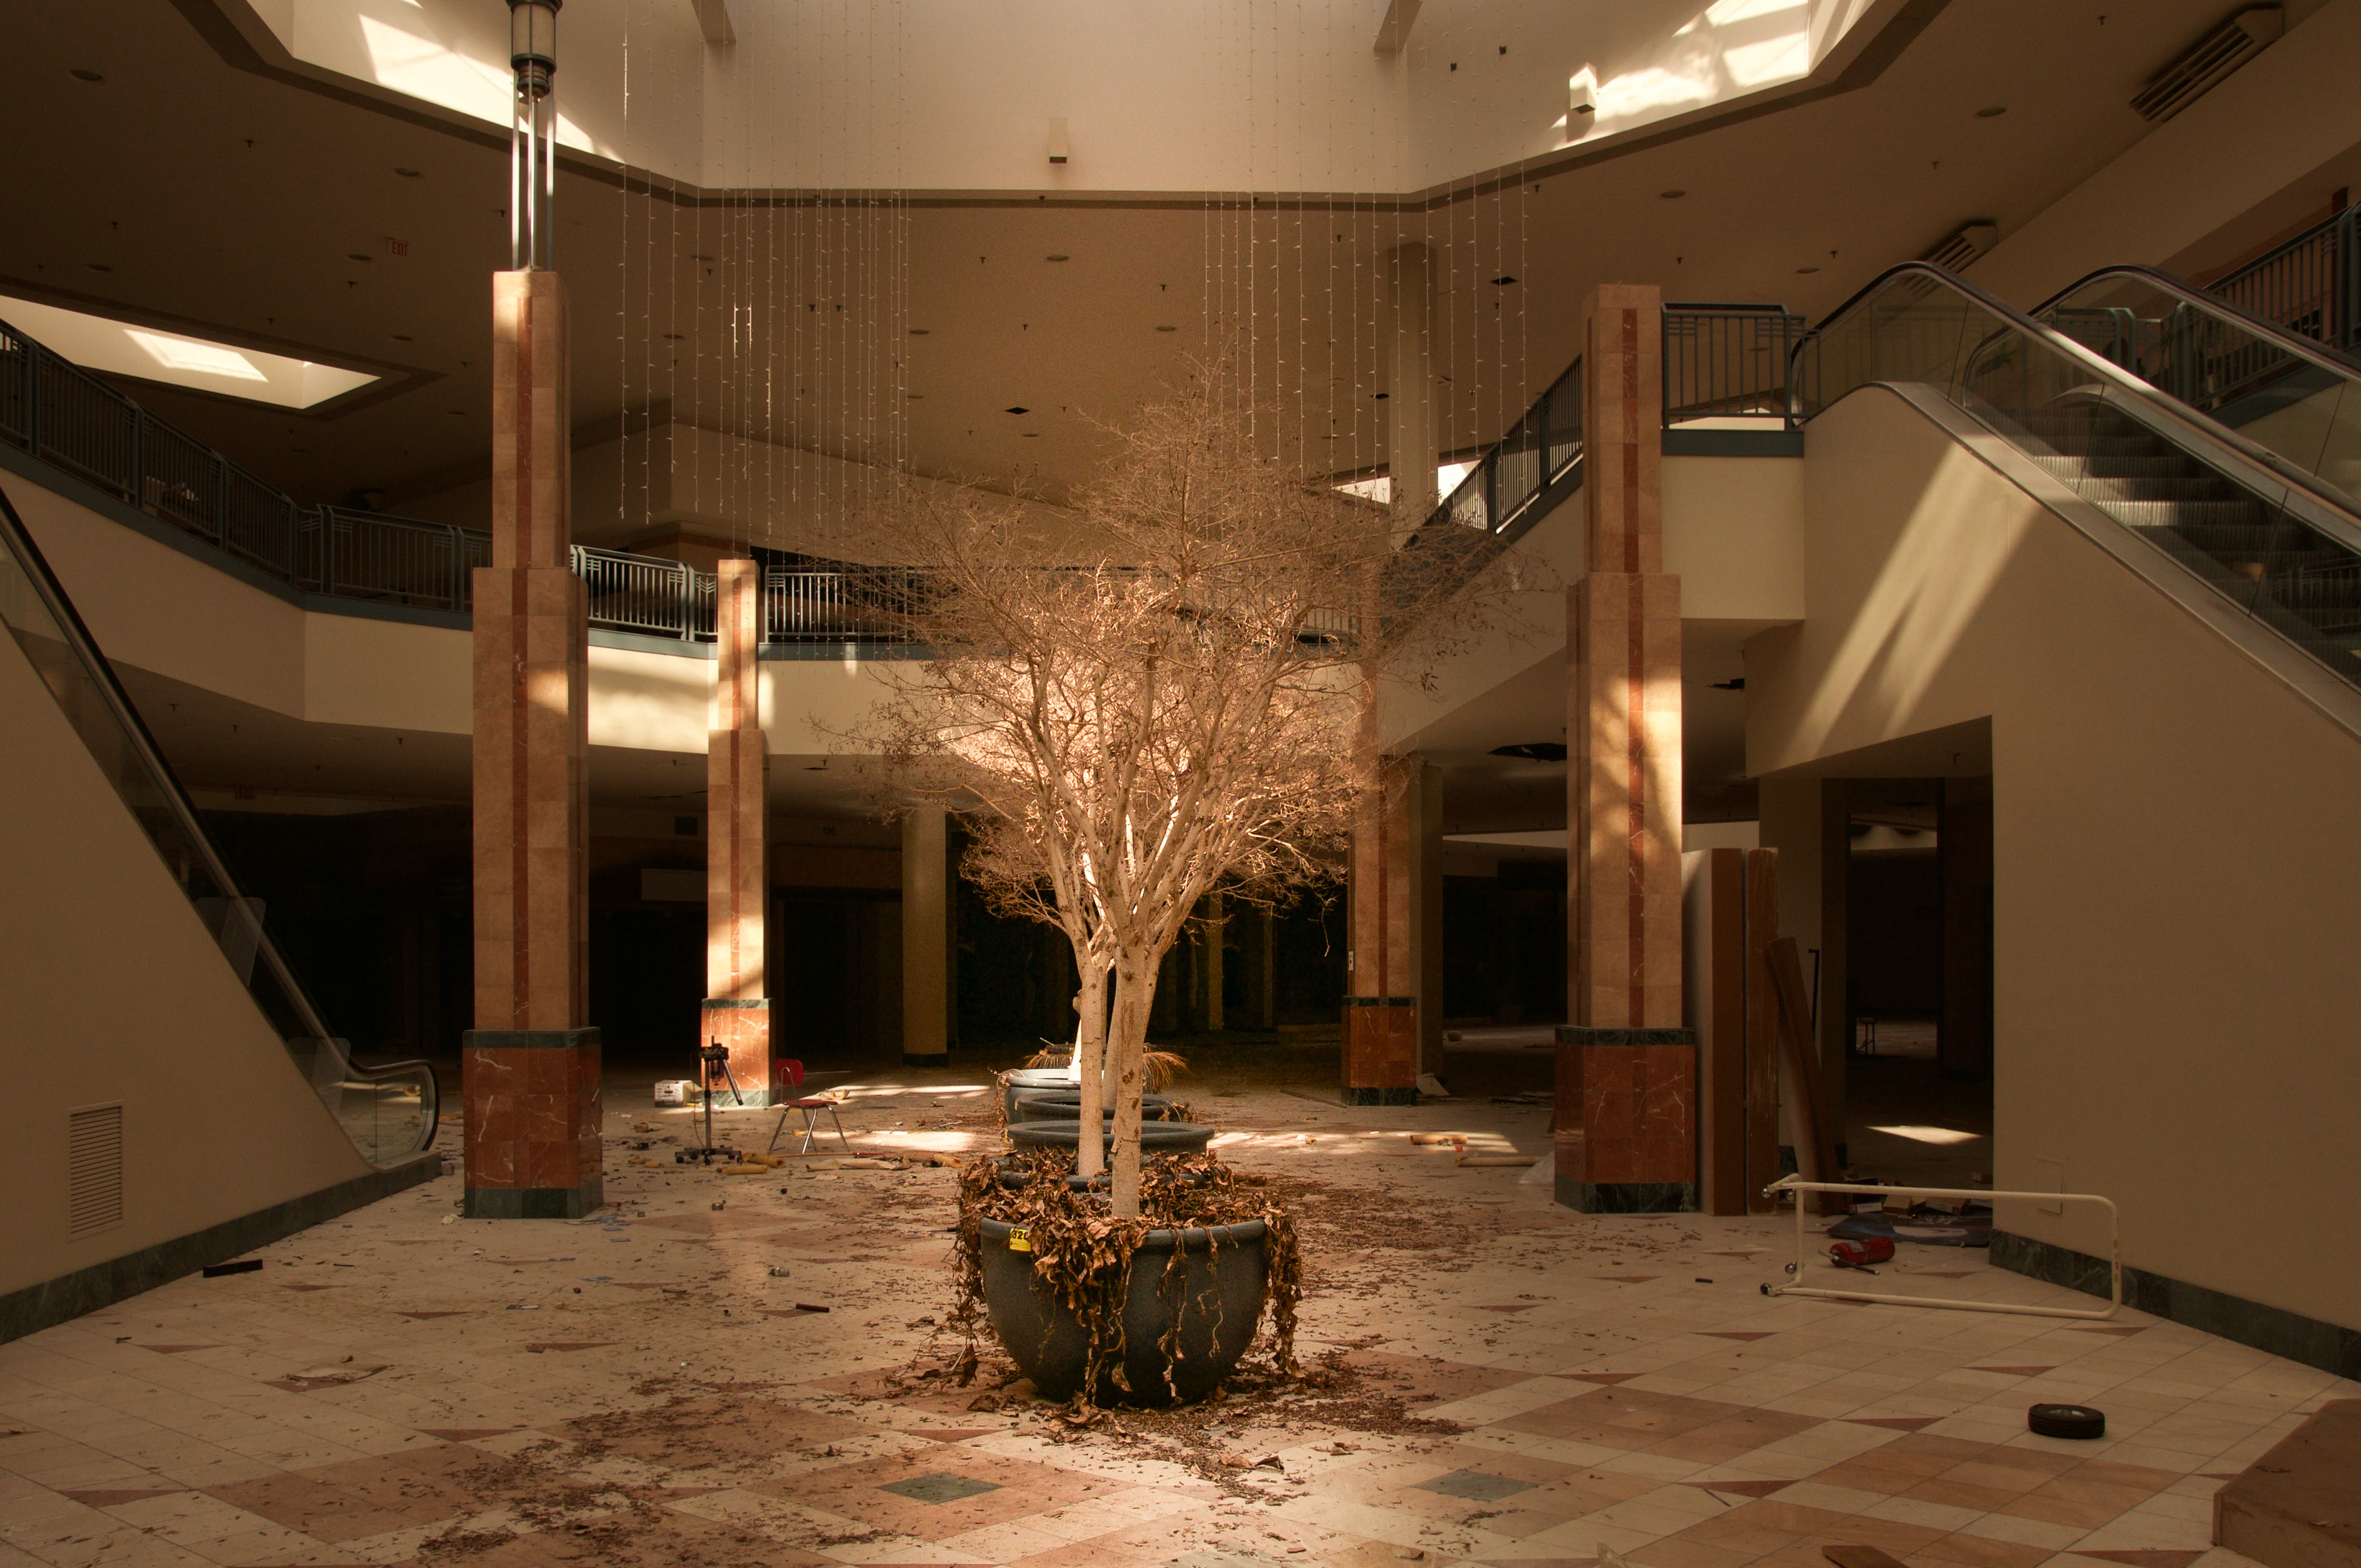 Step Inside The Abandoned Mall That S Been Left To Decay